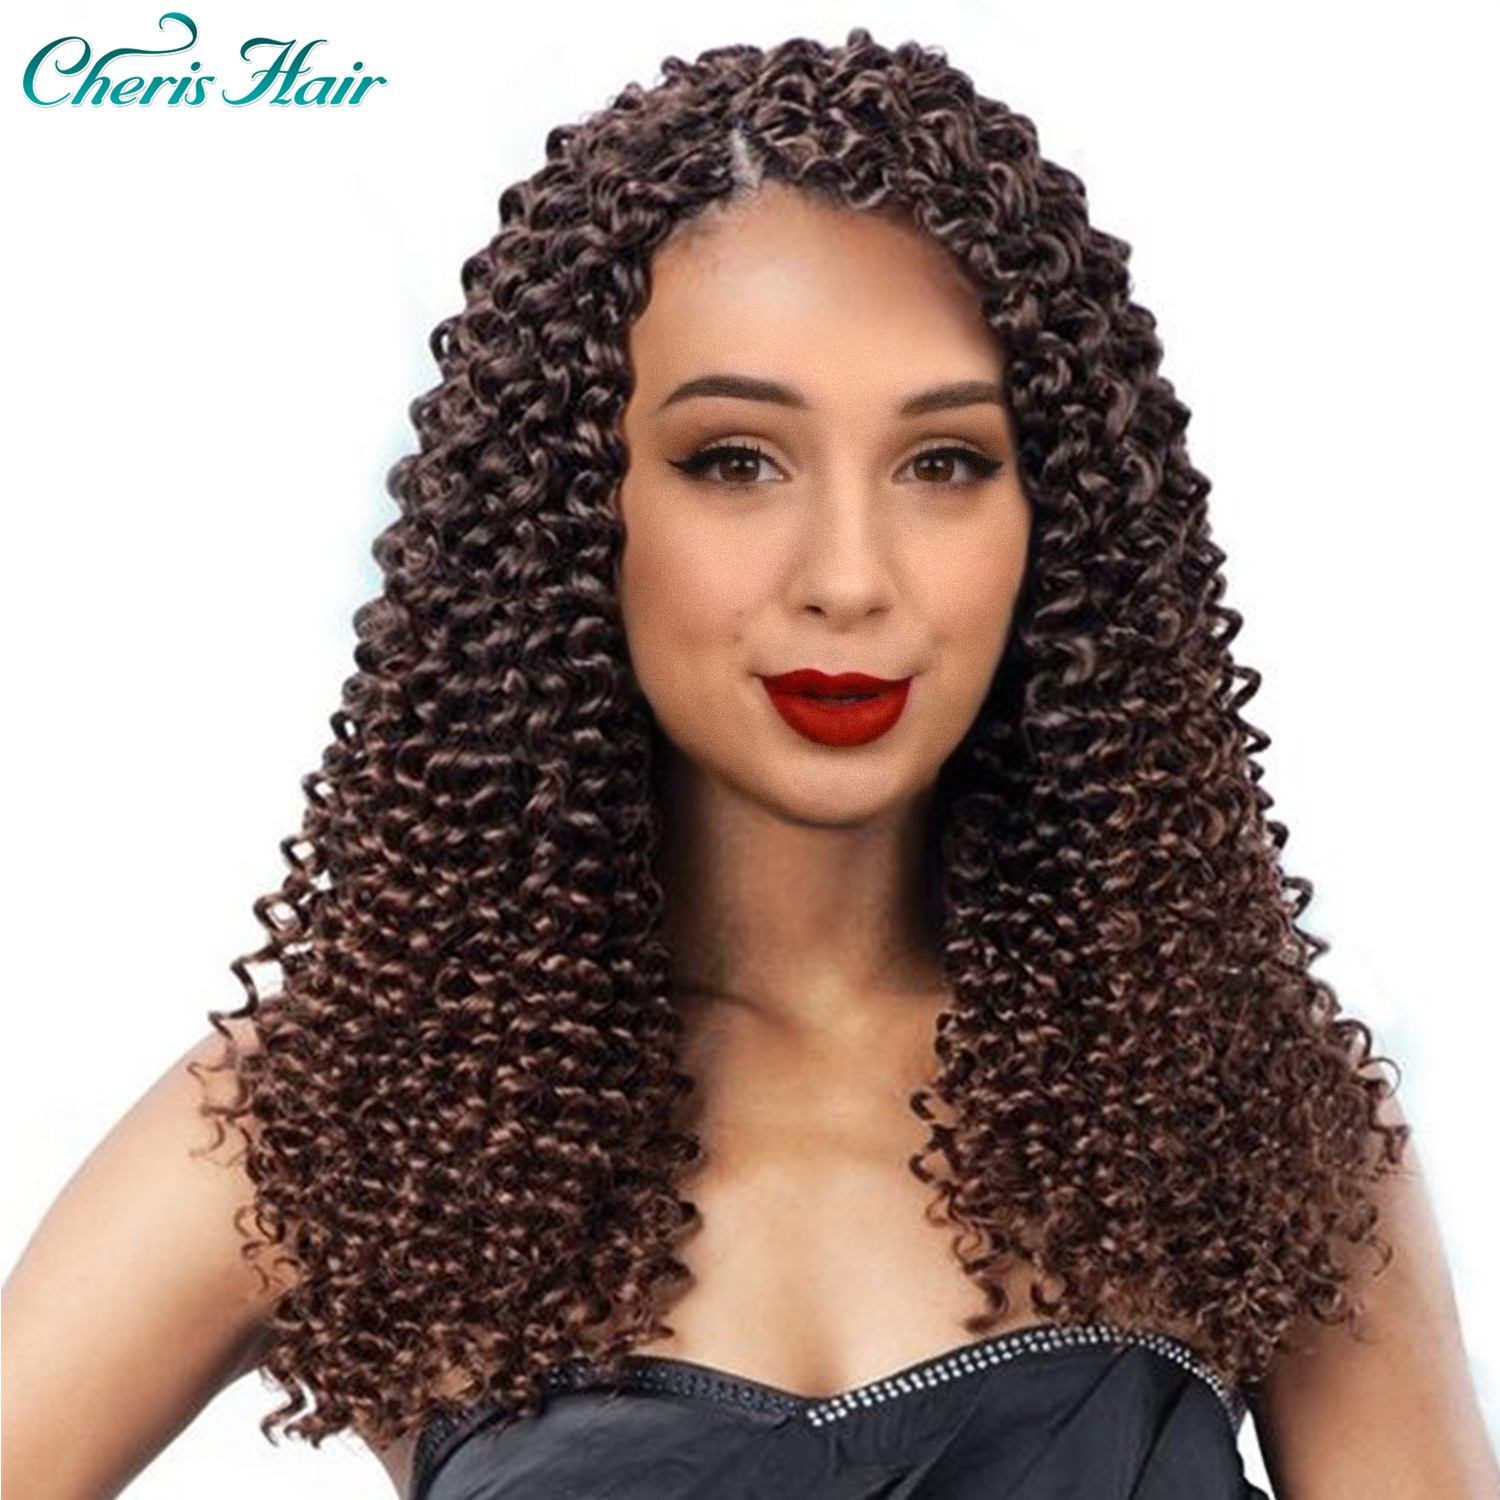 Curly Crochet Hair Water Wavy Curly Hair 14 Inch /100 G / PC Crochet Freetresse Hair Extension Synthetic Hair Pieces